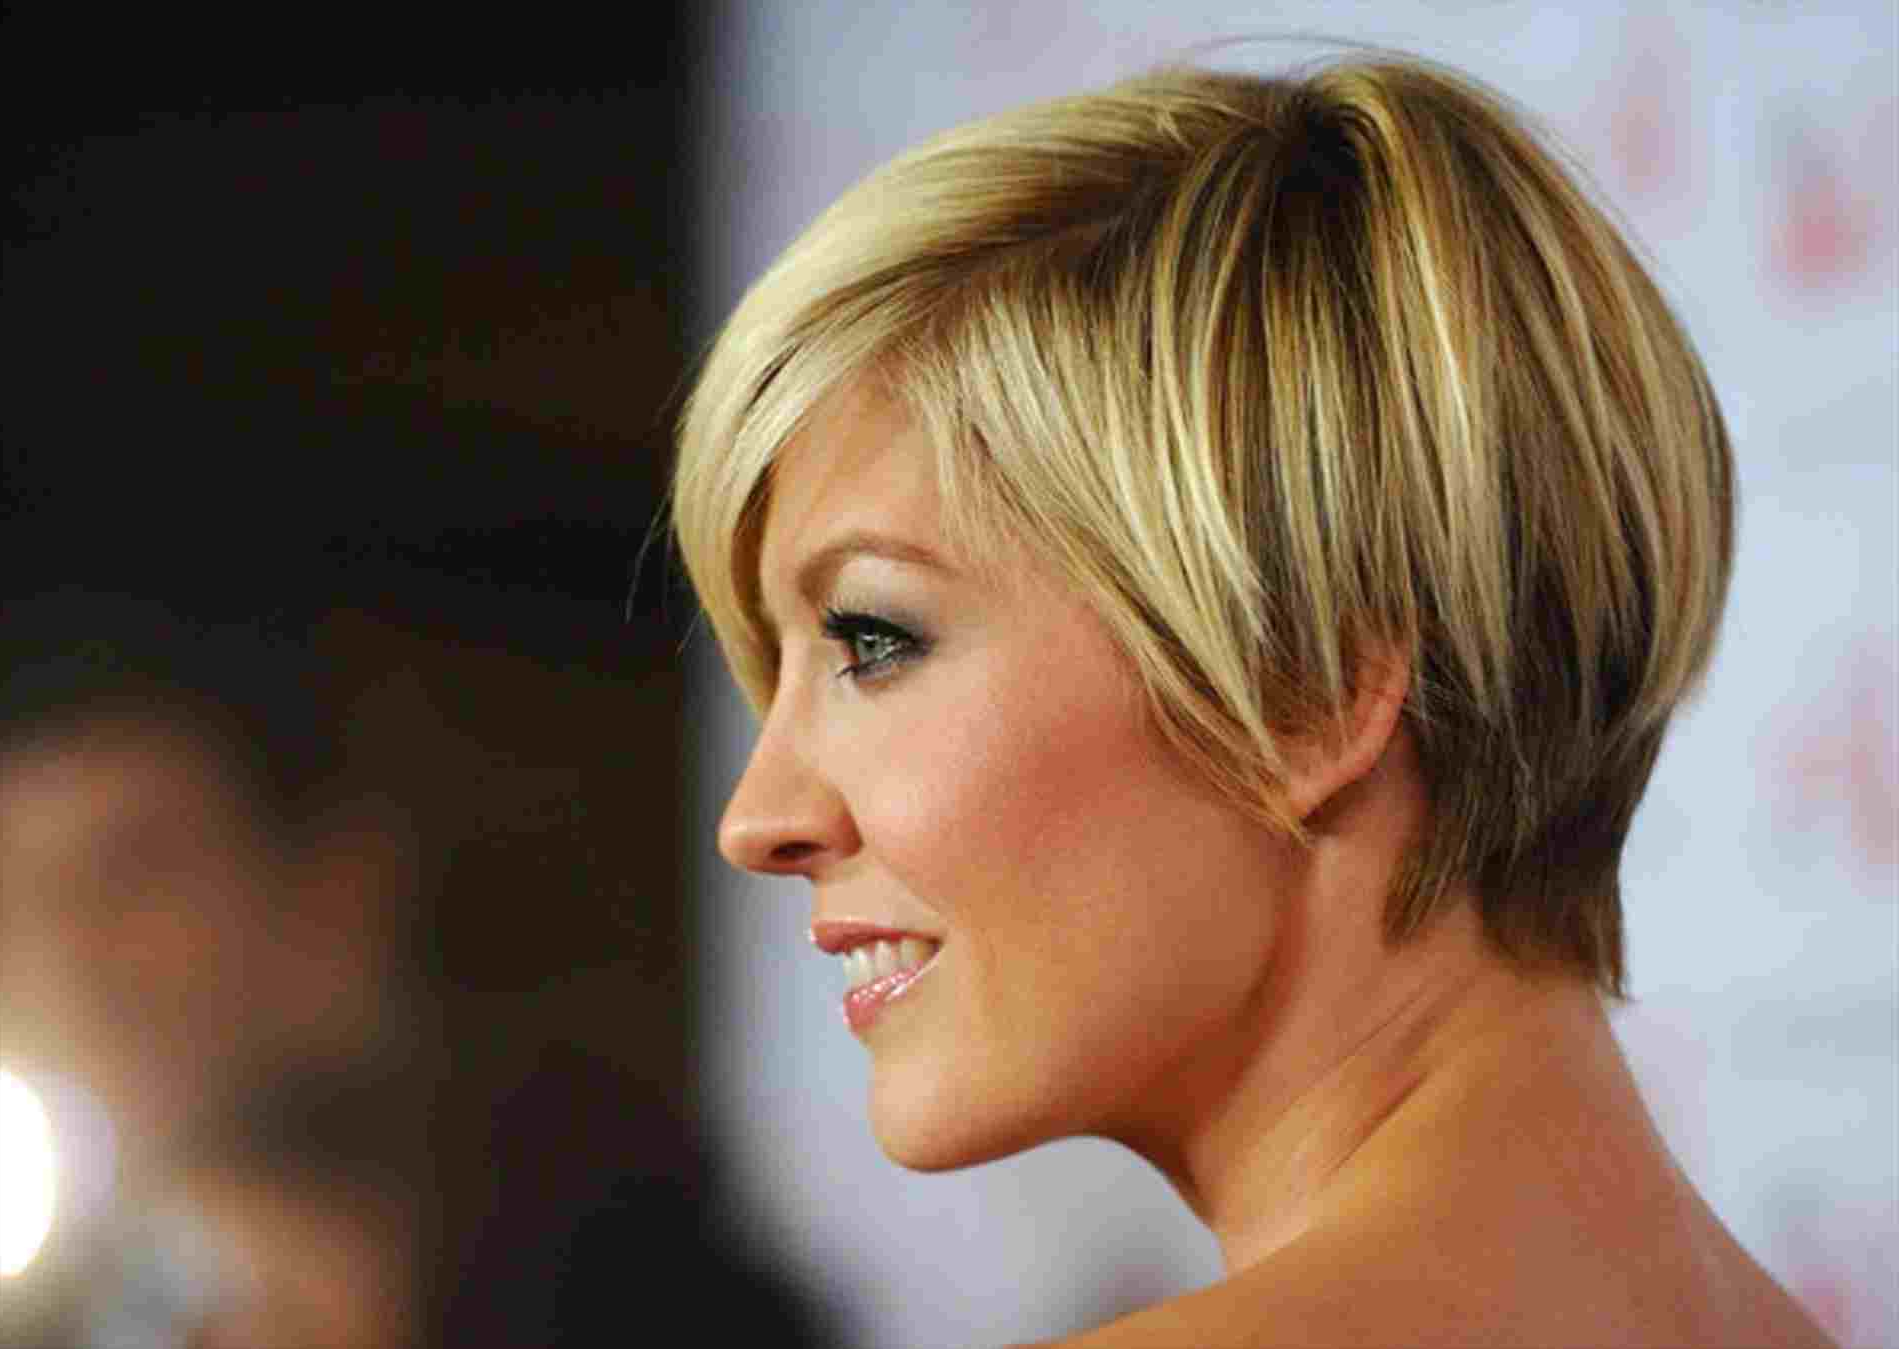 Hairstyles For Fat Women Over 40 Trend Hairstyle And Haircut Intended For Short Hairstyle For Over  (View 12 of 25)